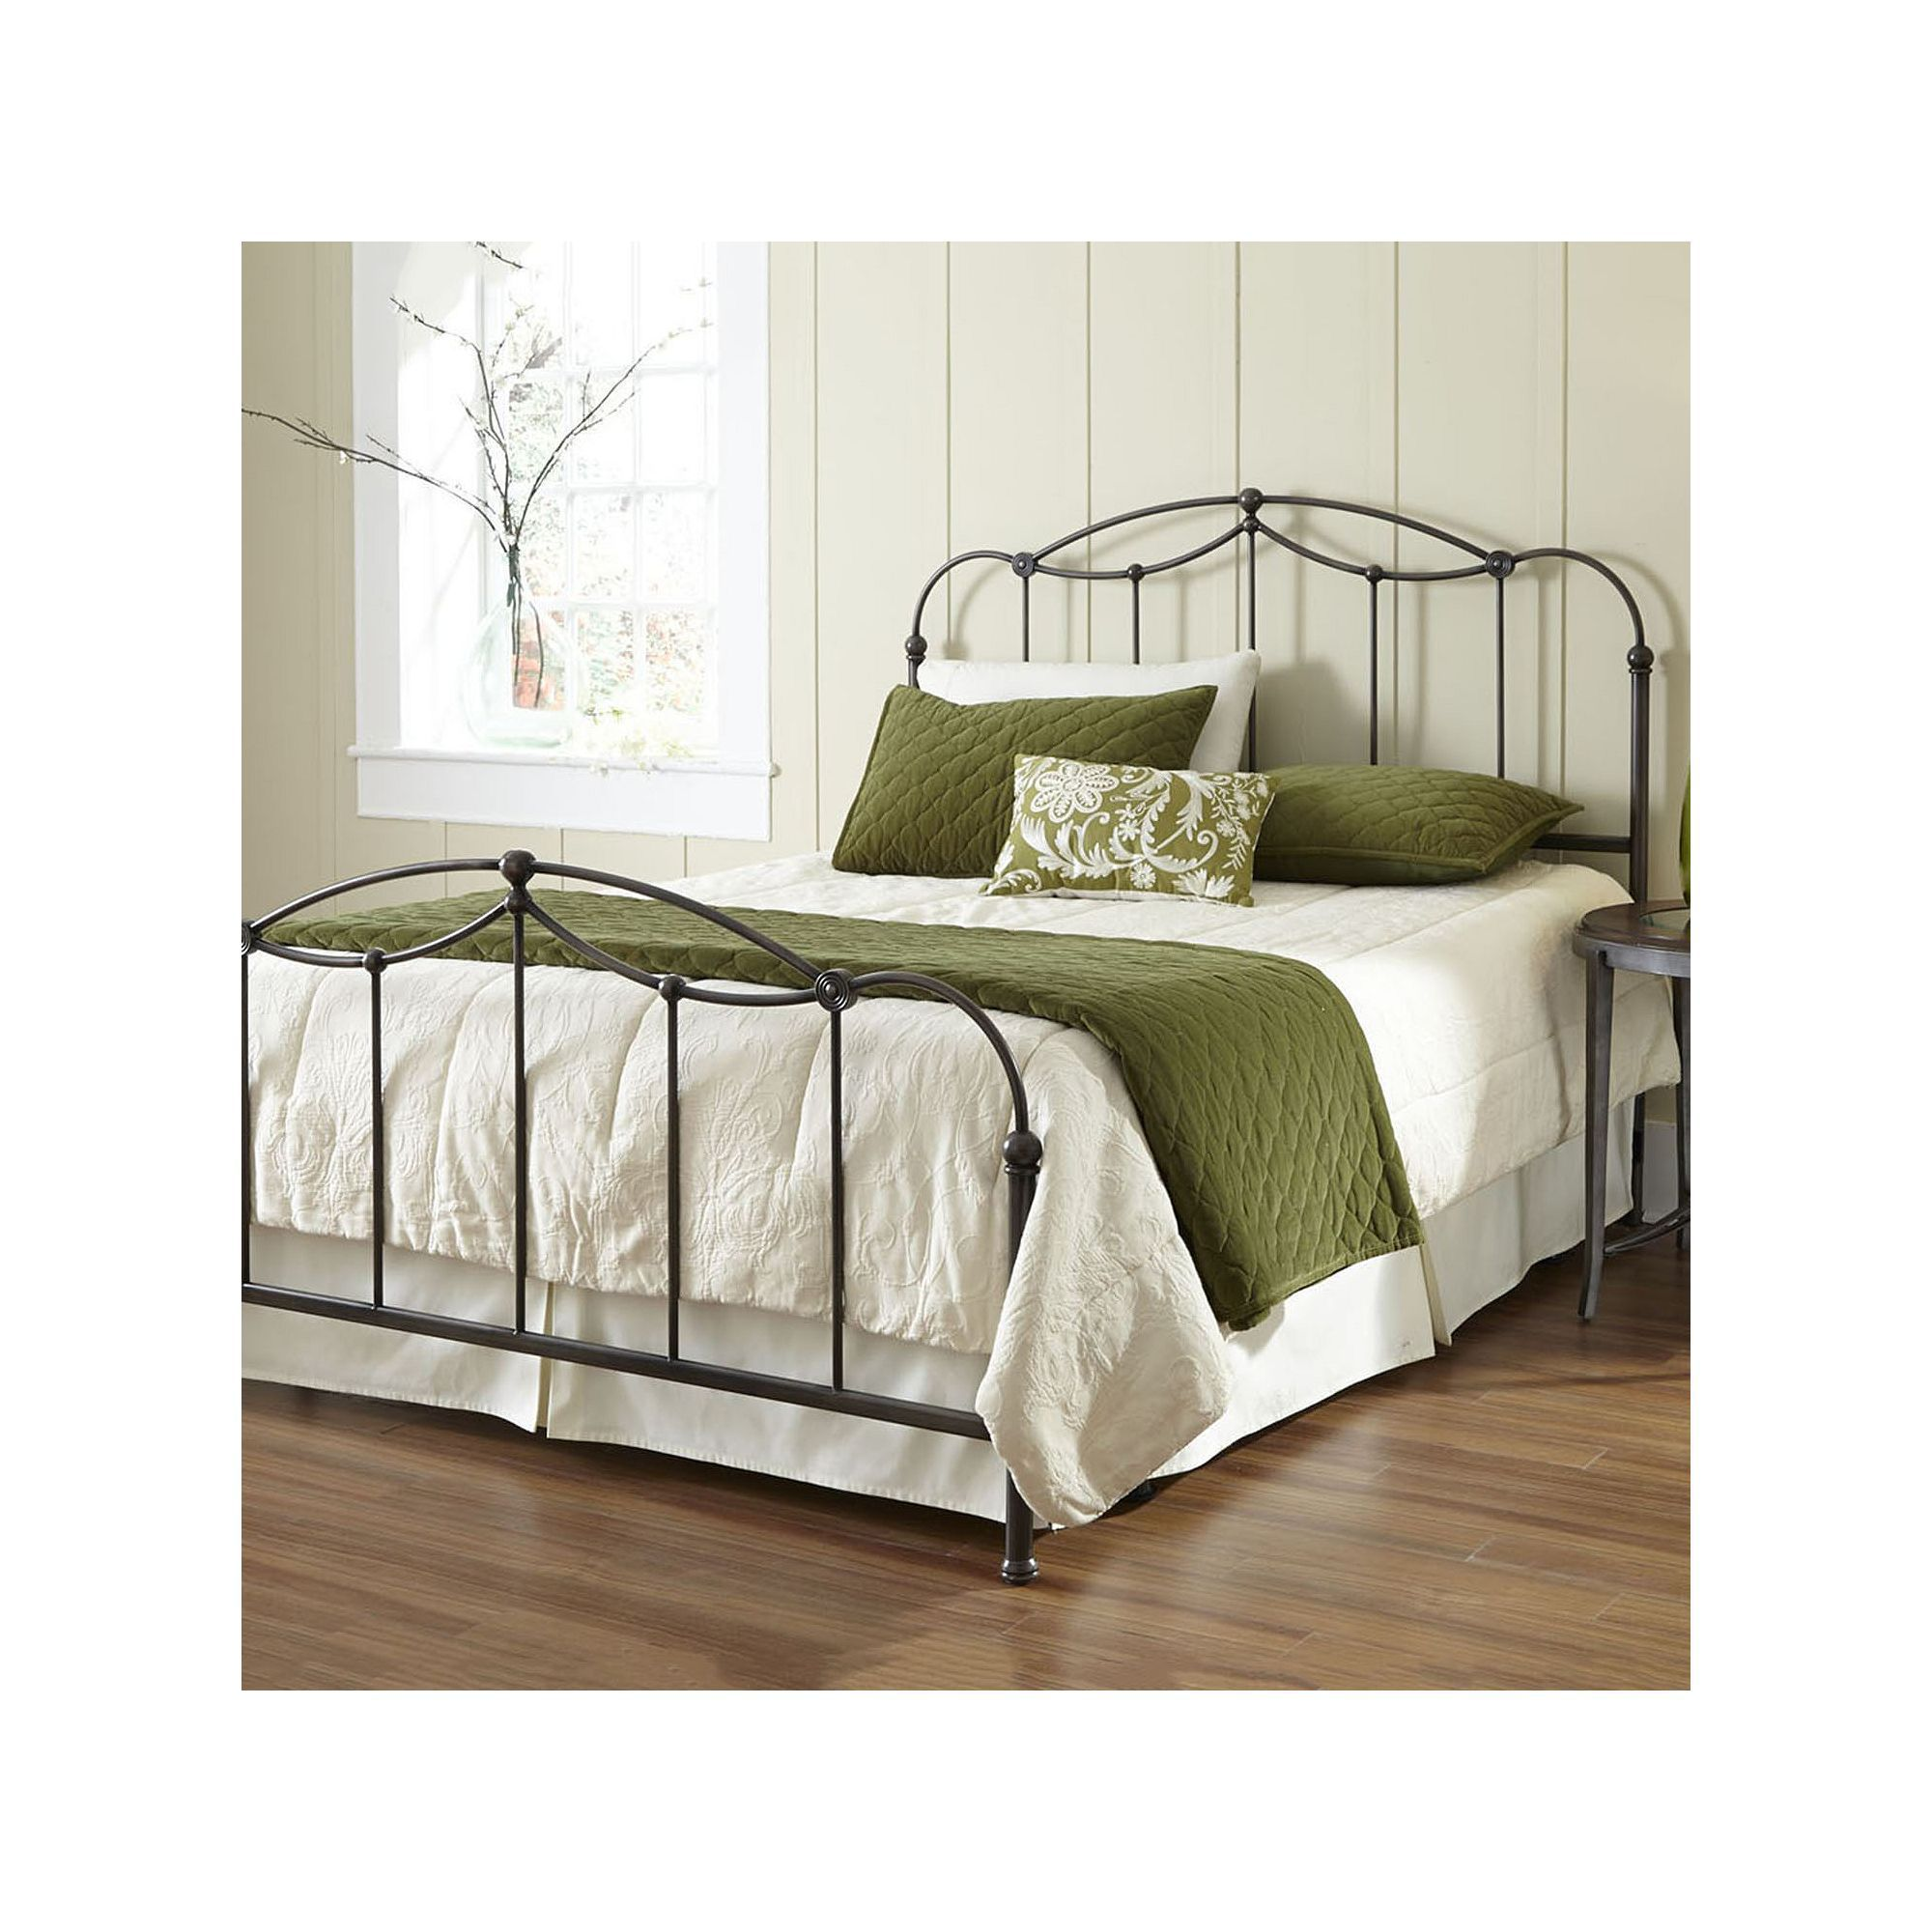 Fashion bed group affinity bed products